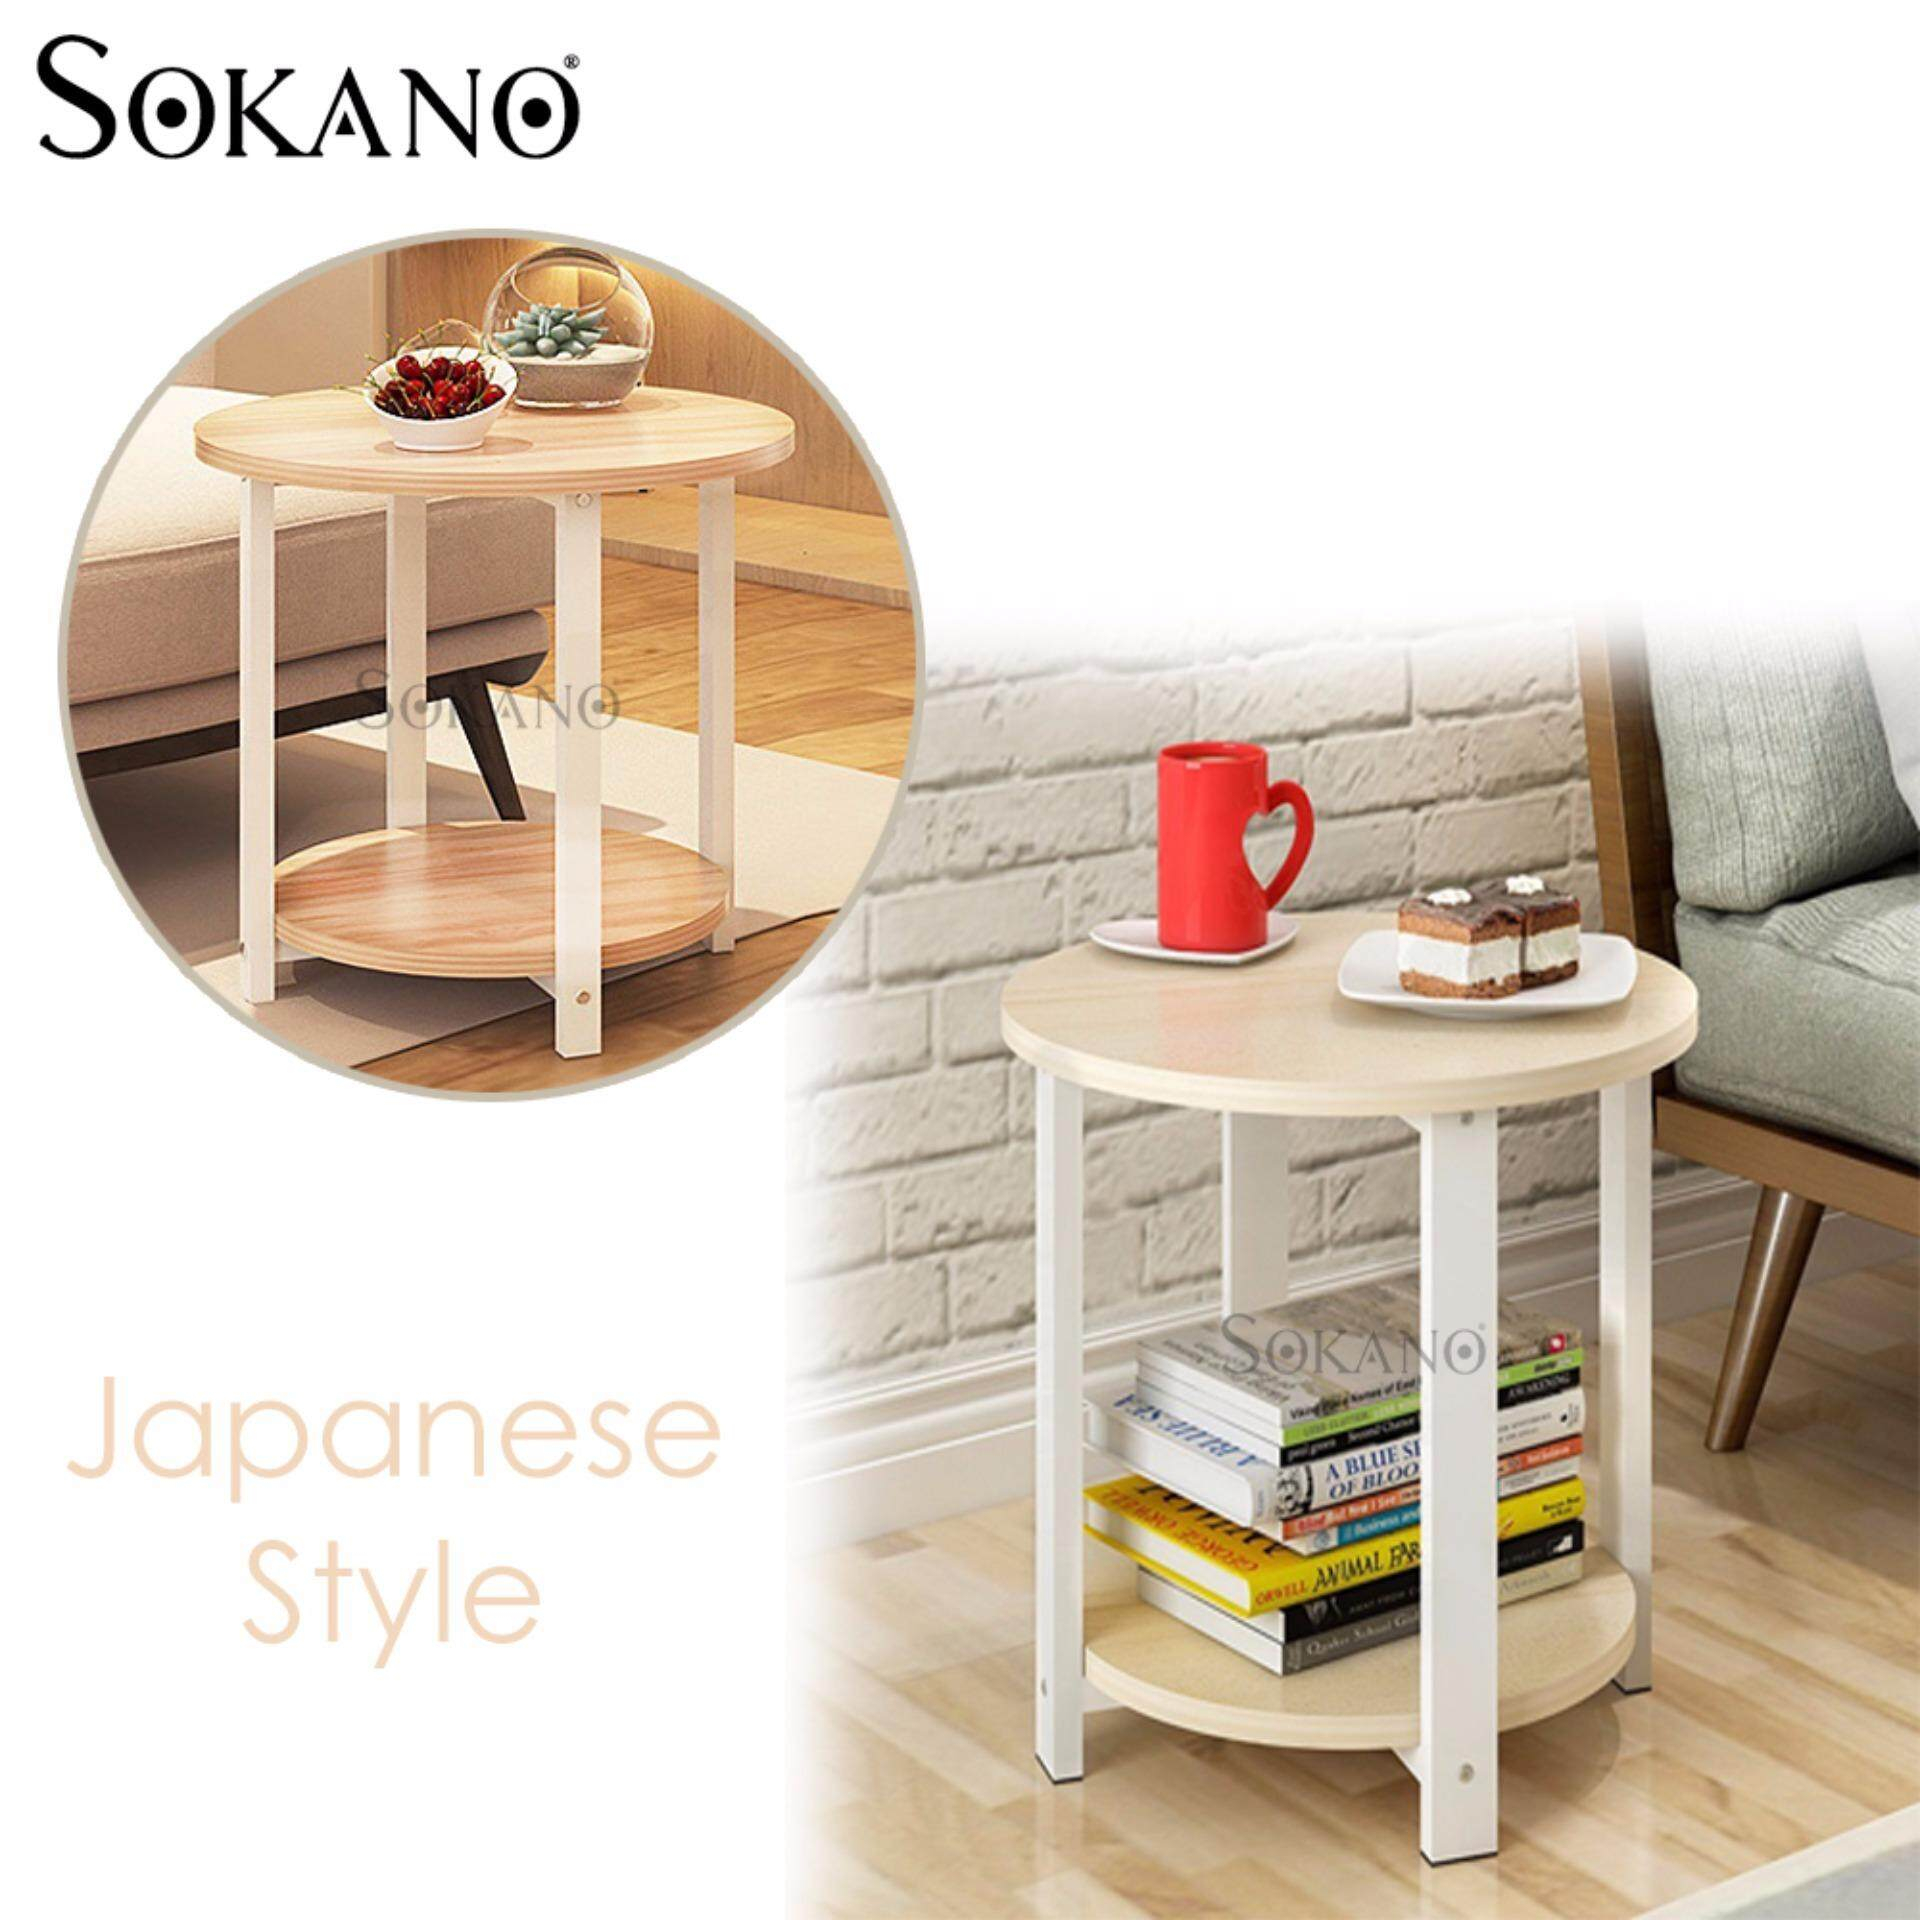 SOKANO N13 Japanese Style 2 Tiers Wooden Coffee Table - Light Brown(511070)